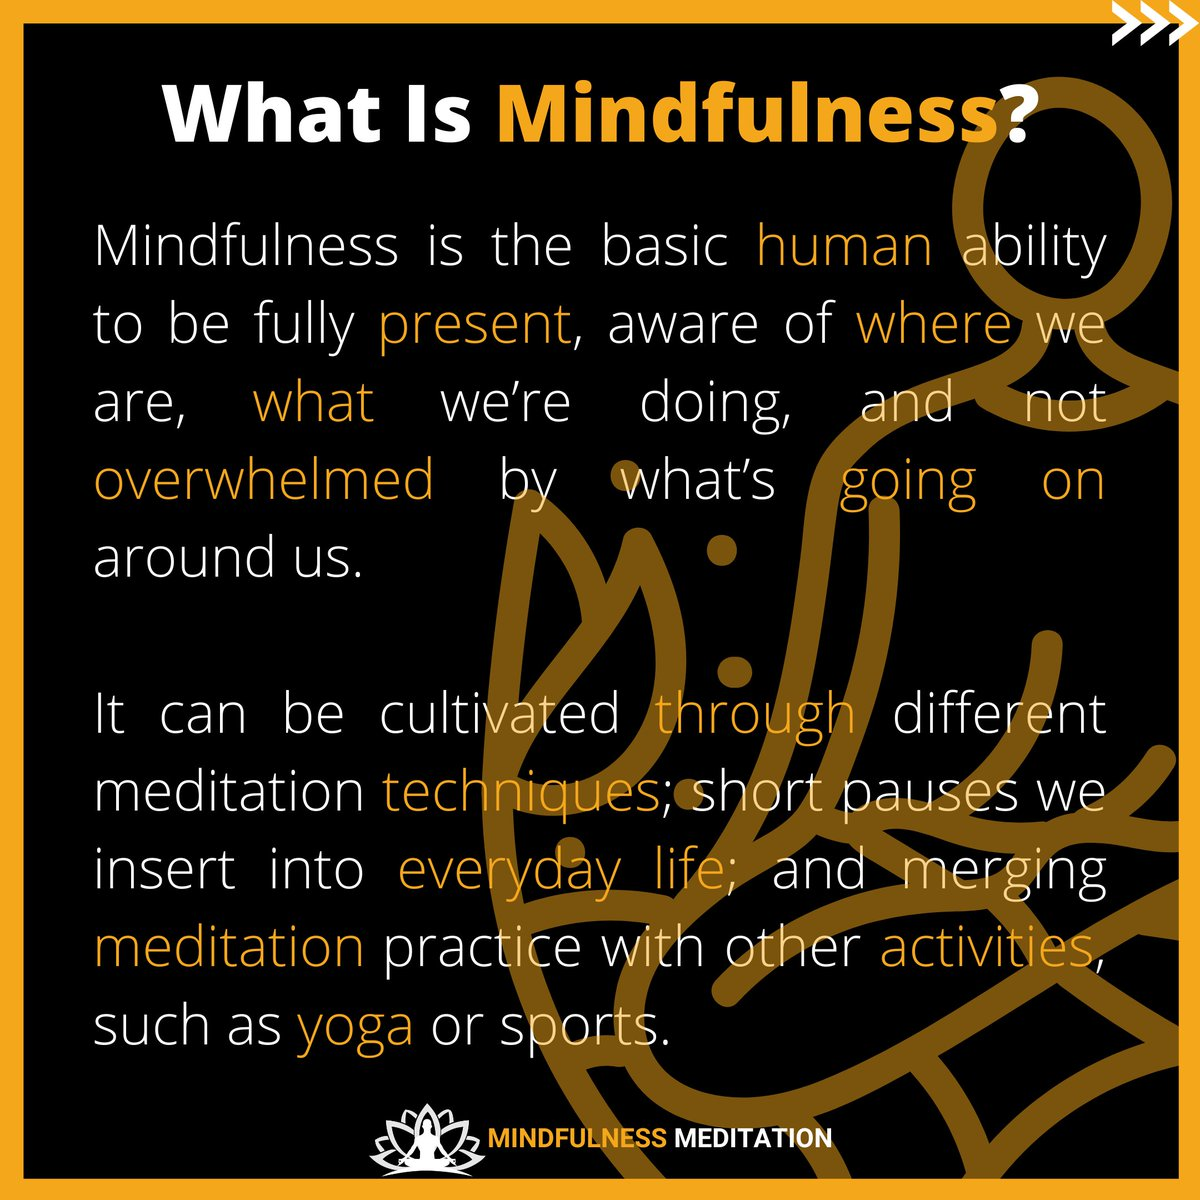 What is Mindfulness? . https://t.co/uOgKJmy2pM . #meditation #mindfulnessmeditation #deepmeditation #innerpeace #relaxingmusic #yoga #relaxingvideos #relaxtime #youtubechannel #youtubevideo #subscribe #subscribetomychannel #Mindfulness https://t.co/U4Jaa2qlBQ